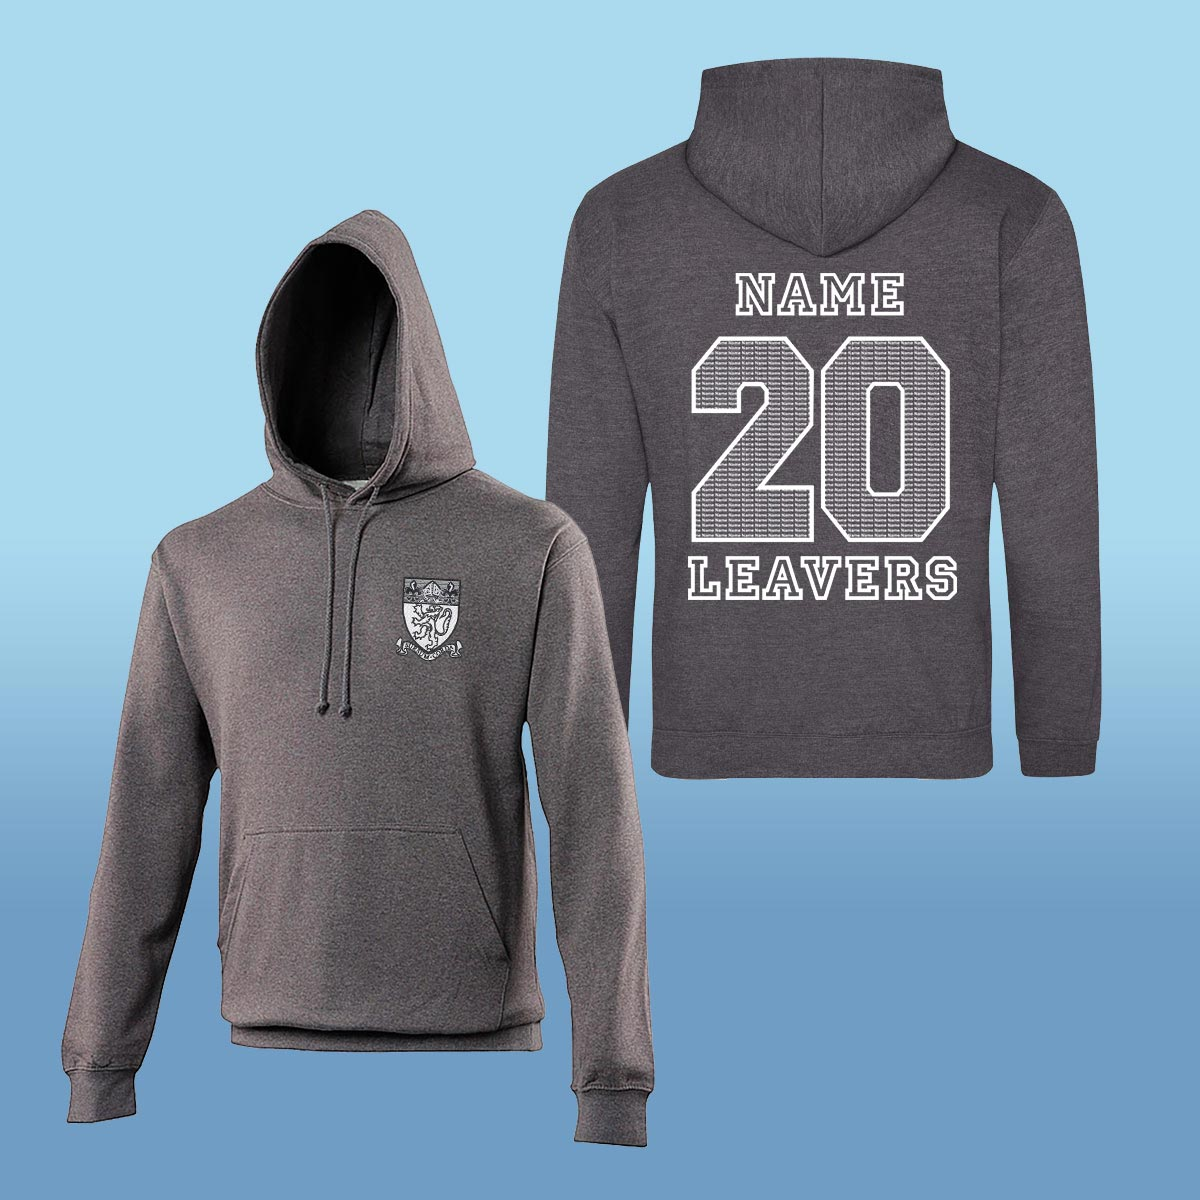 Piggot School Leavers Hoodies